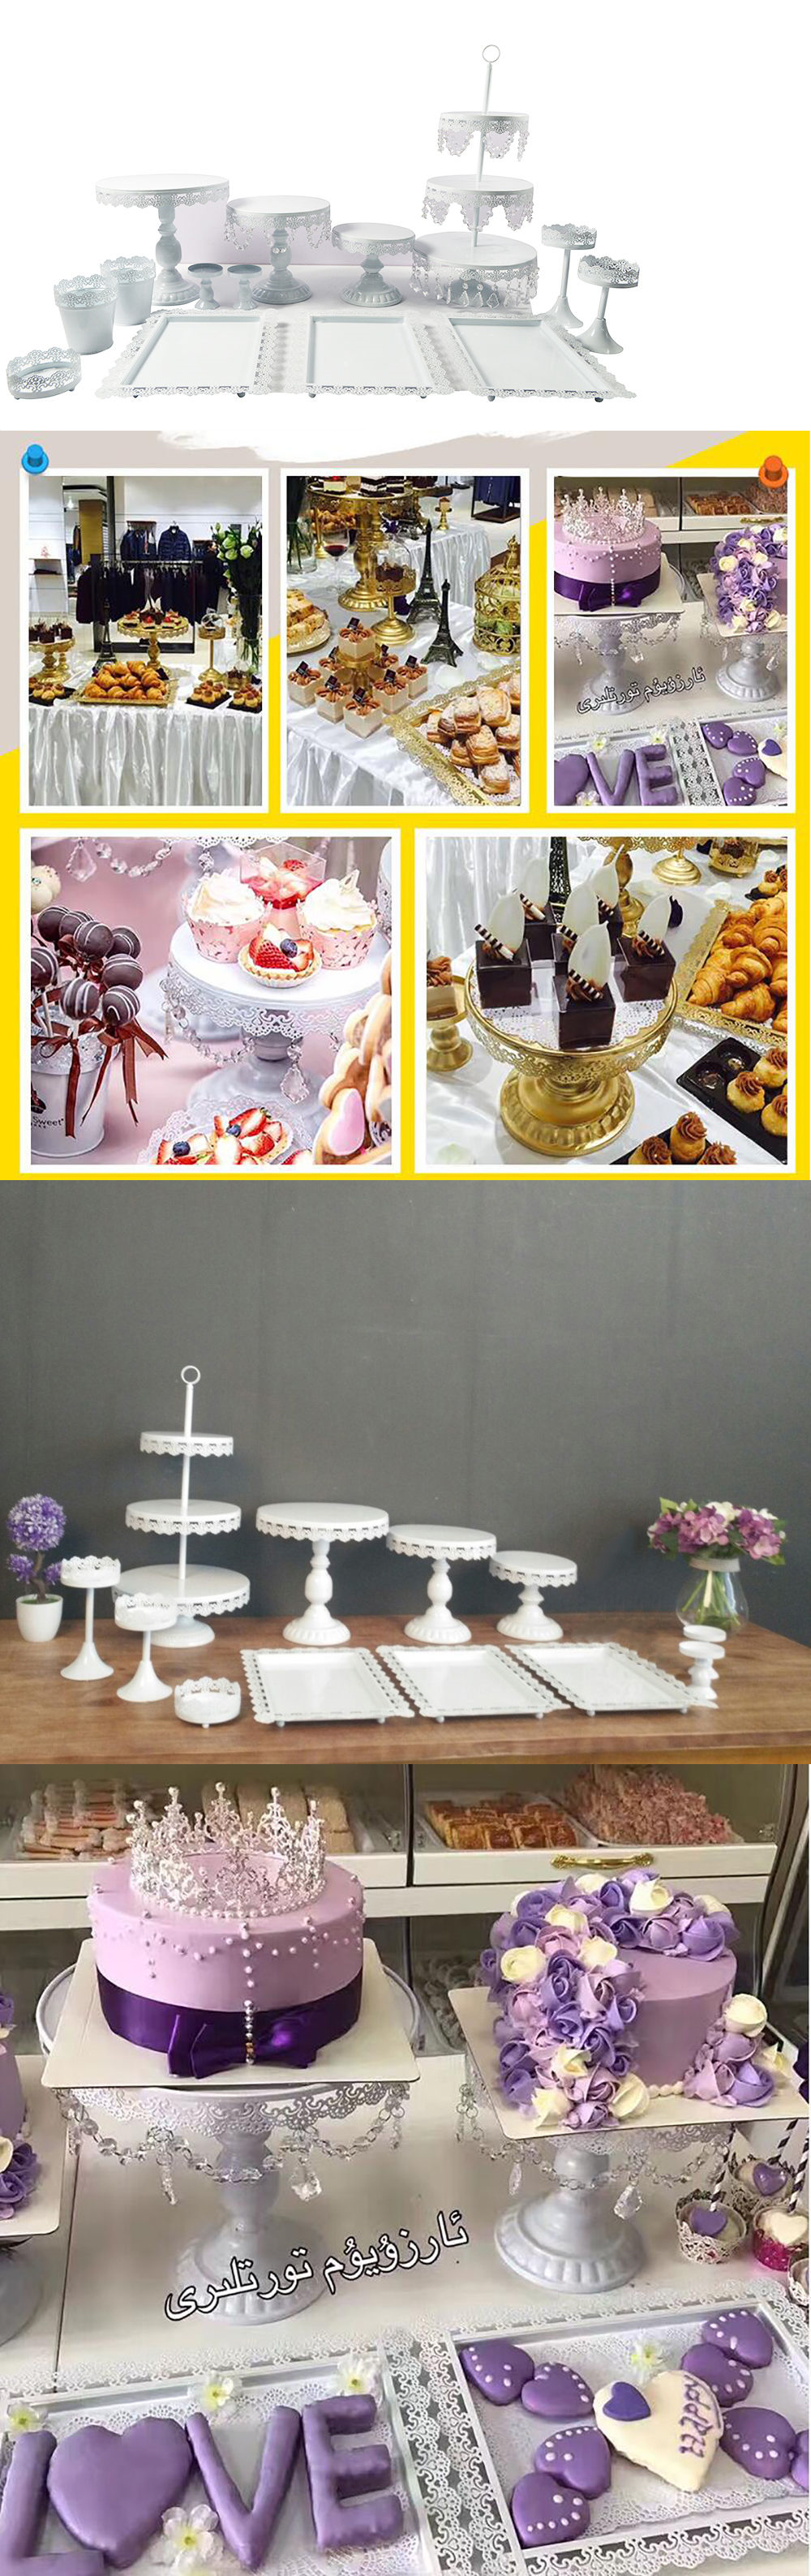 Wedding cake stands and plates cakes display crystal pcs